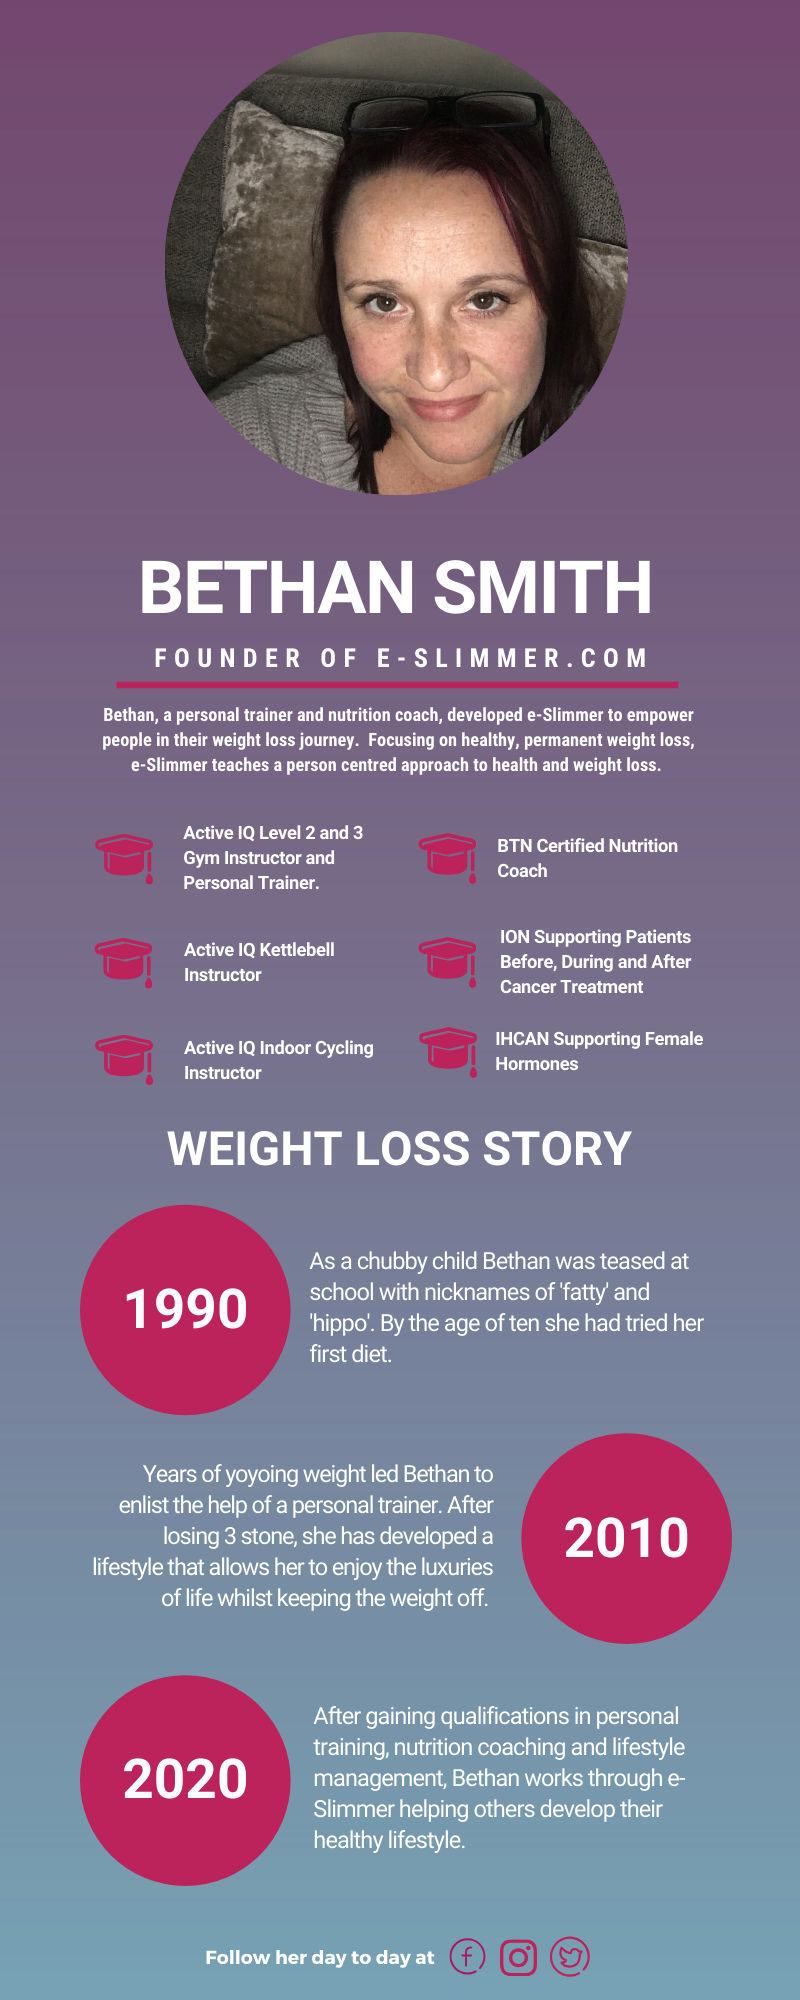 As someone who has, and still does, struggle with her weight, I know how difficult the weight loss journey can be. I'd like to help you reach your goals.